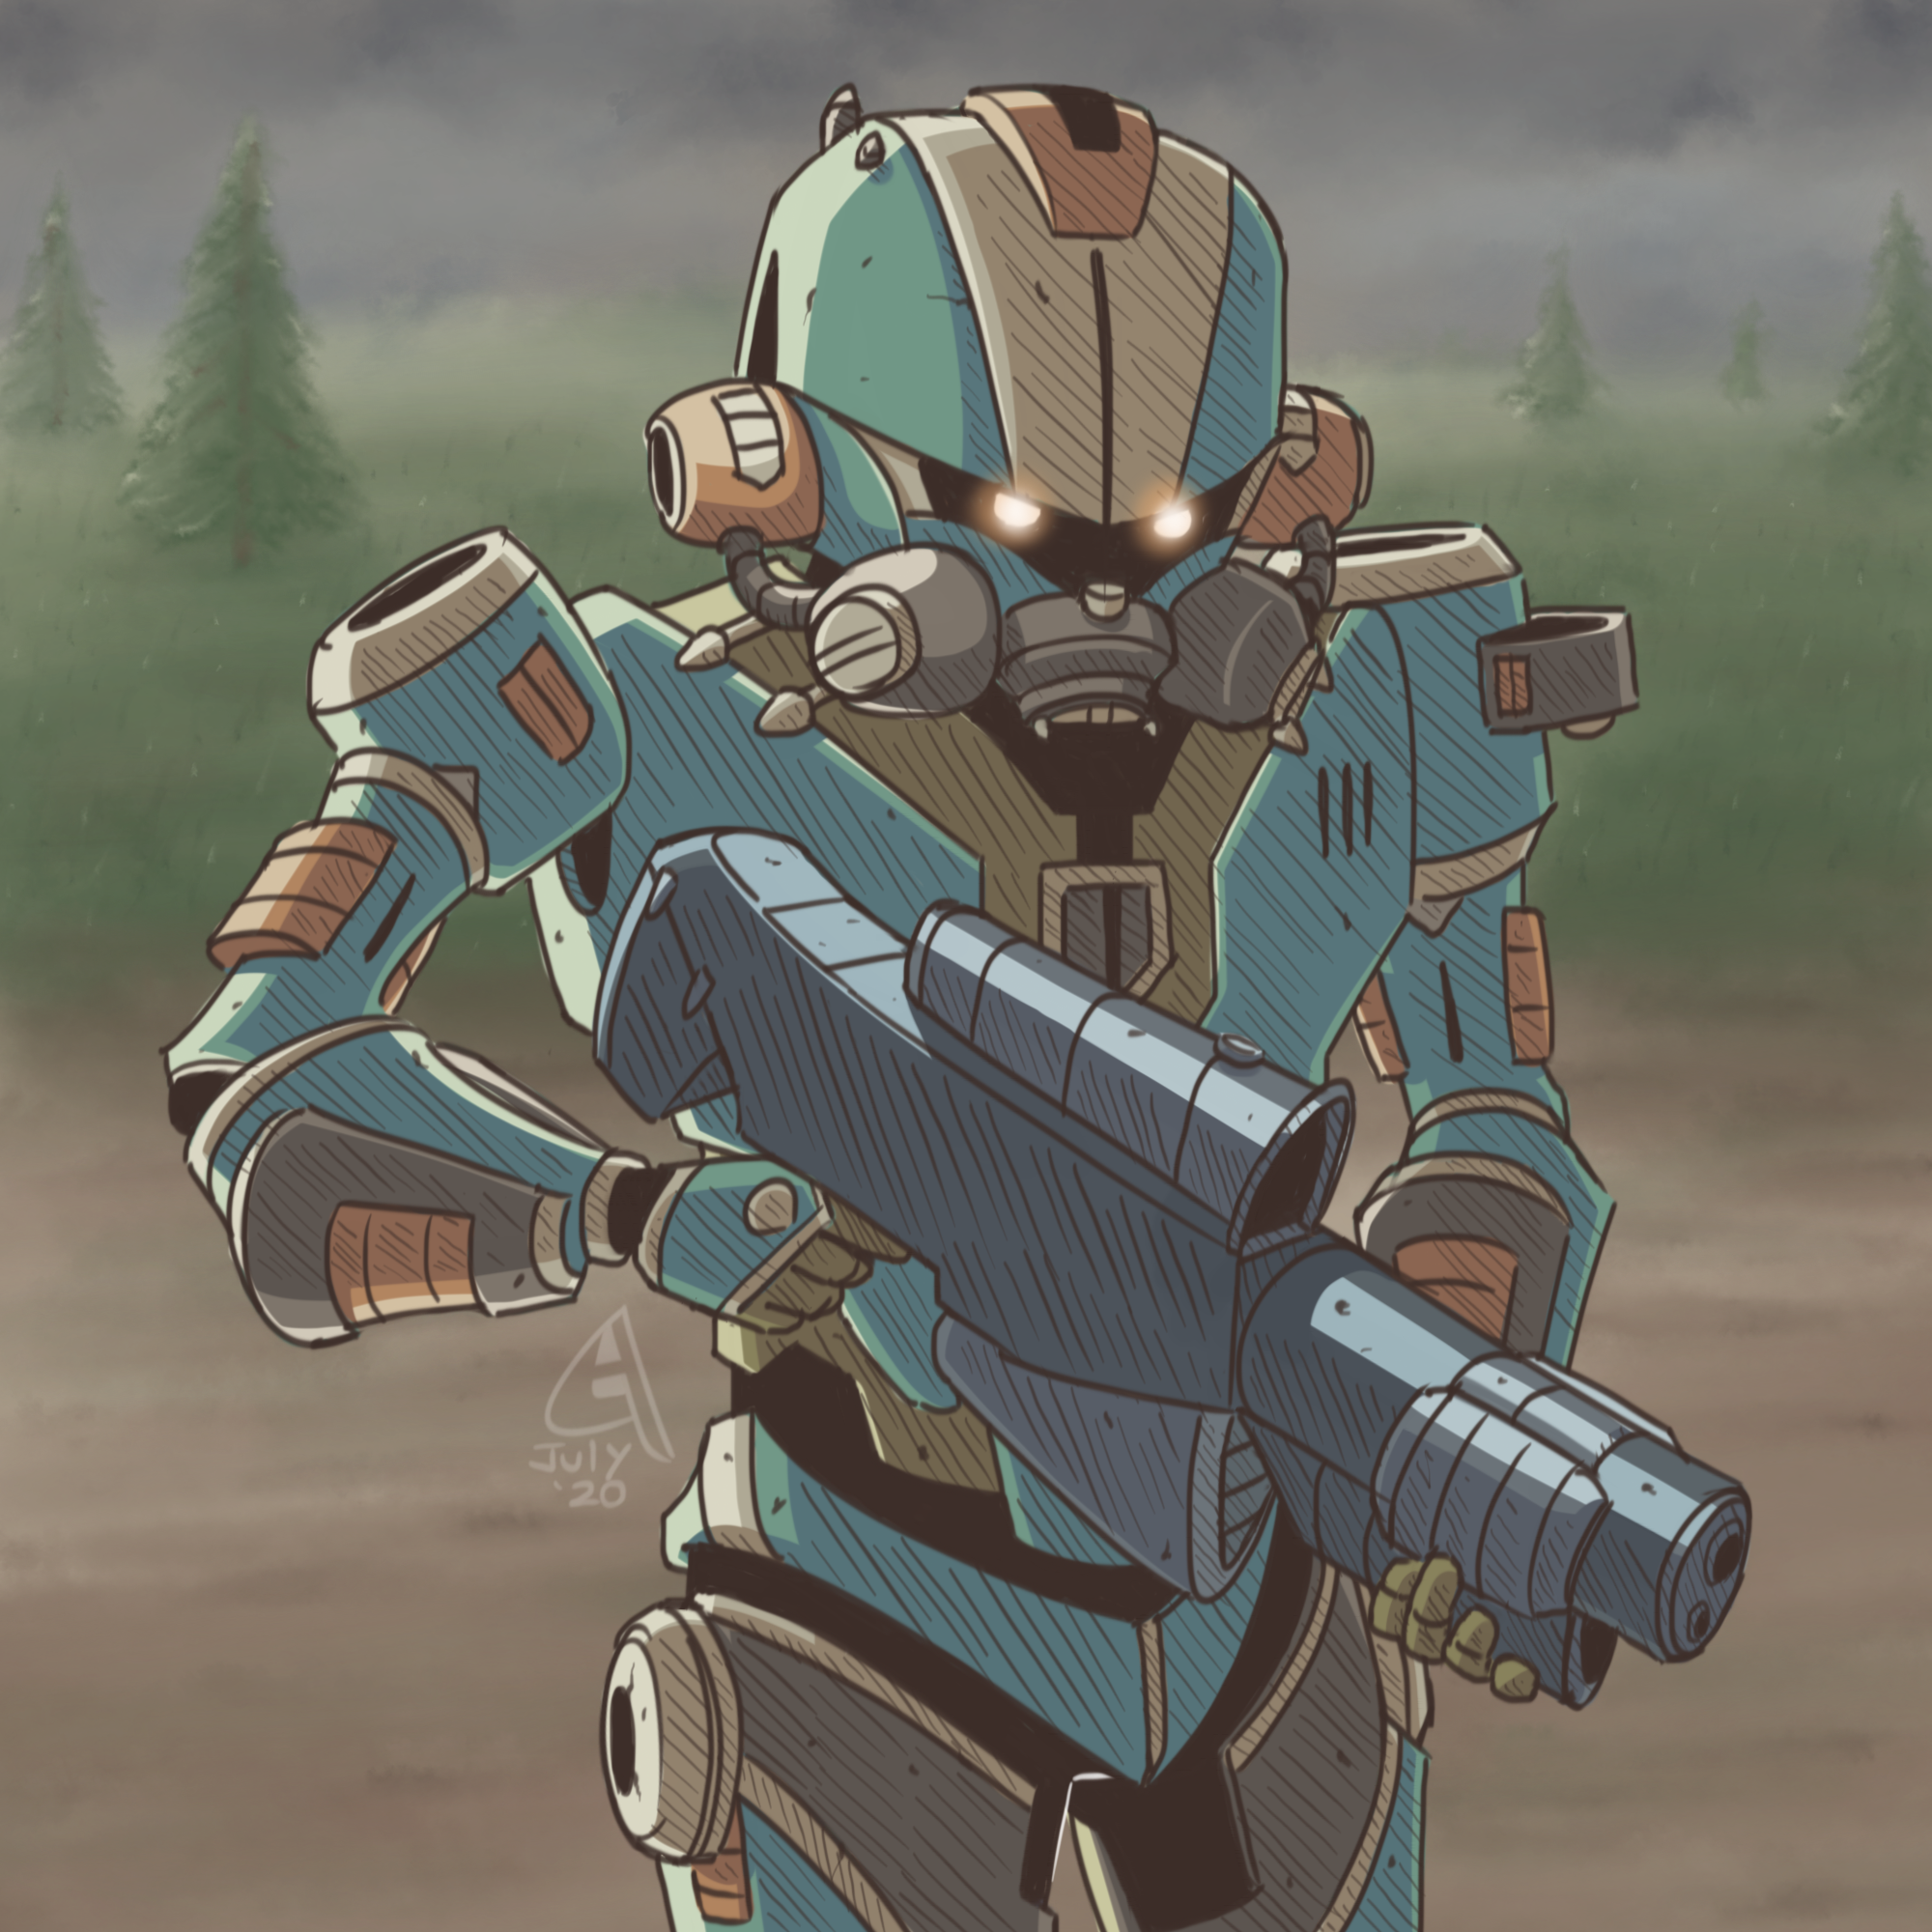 Future Soldier of the Final Unit